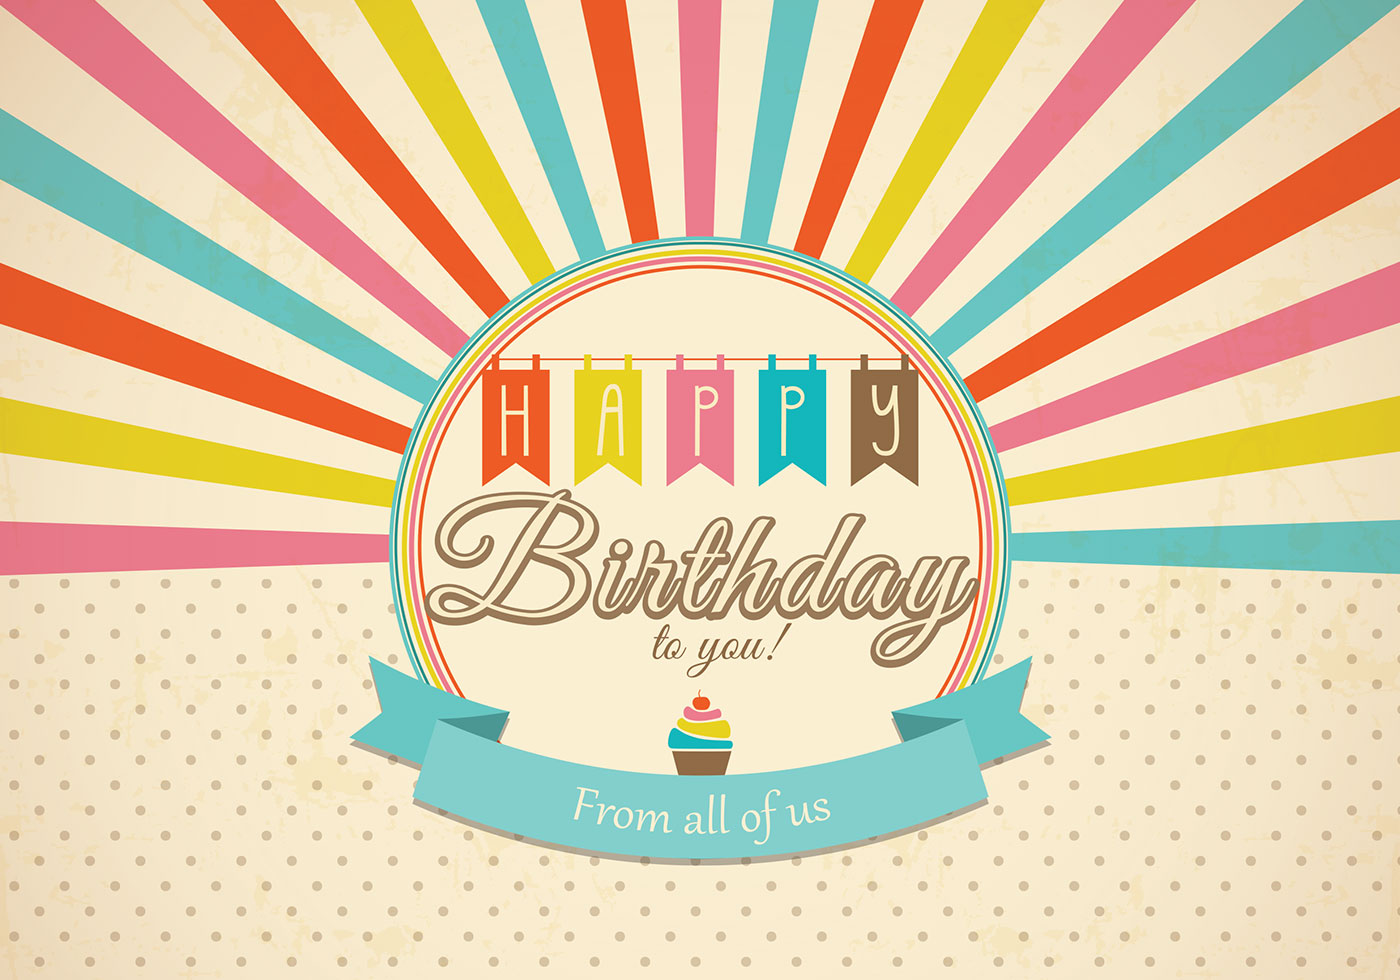 Retro happy birthday card psd free photoshop brushes at brusheezy maxwellsz